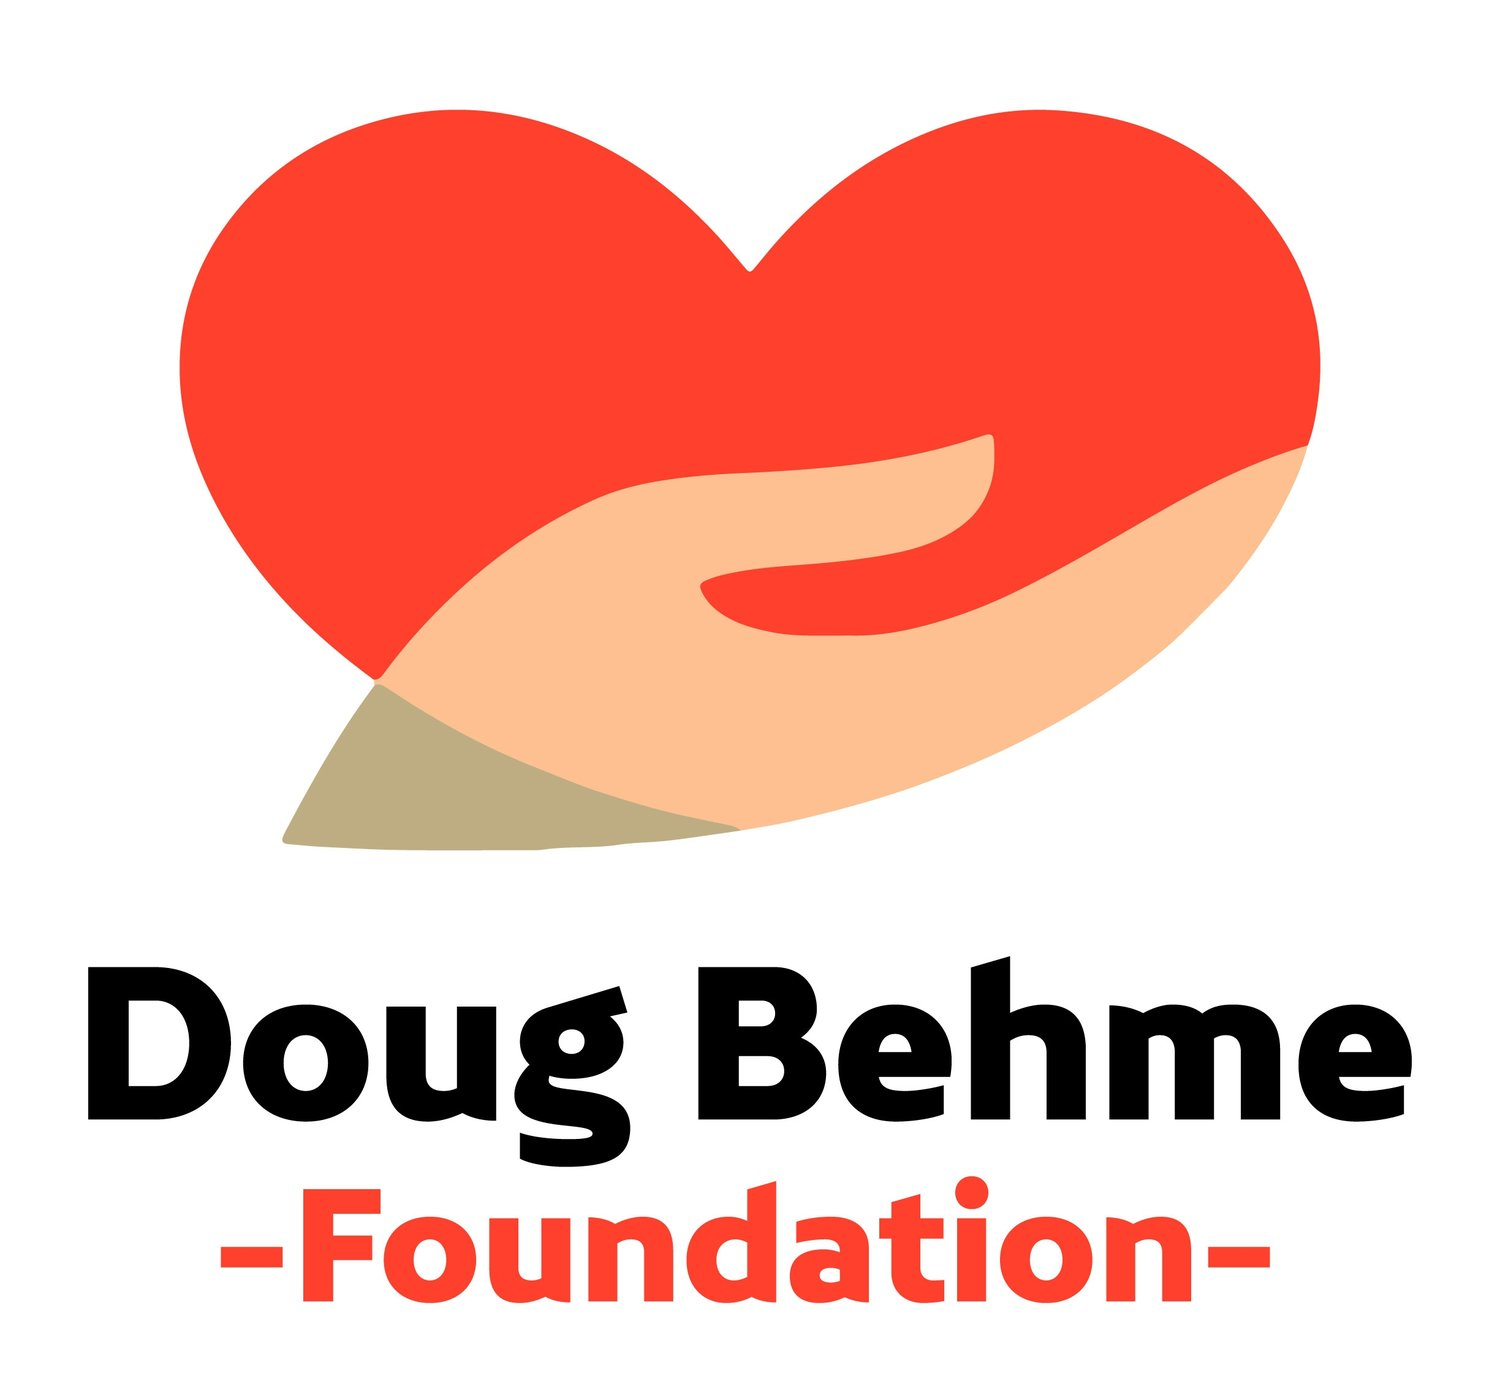 Doug Behme Foundation